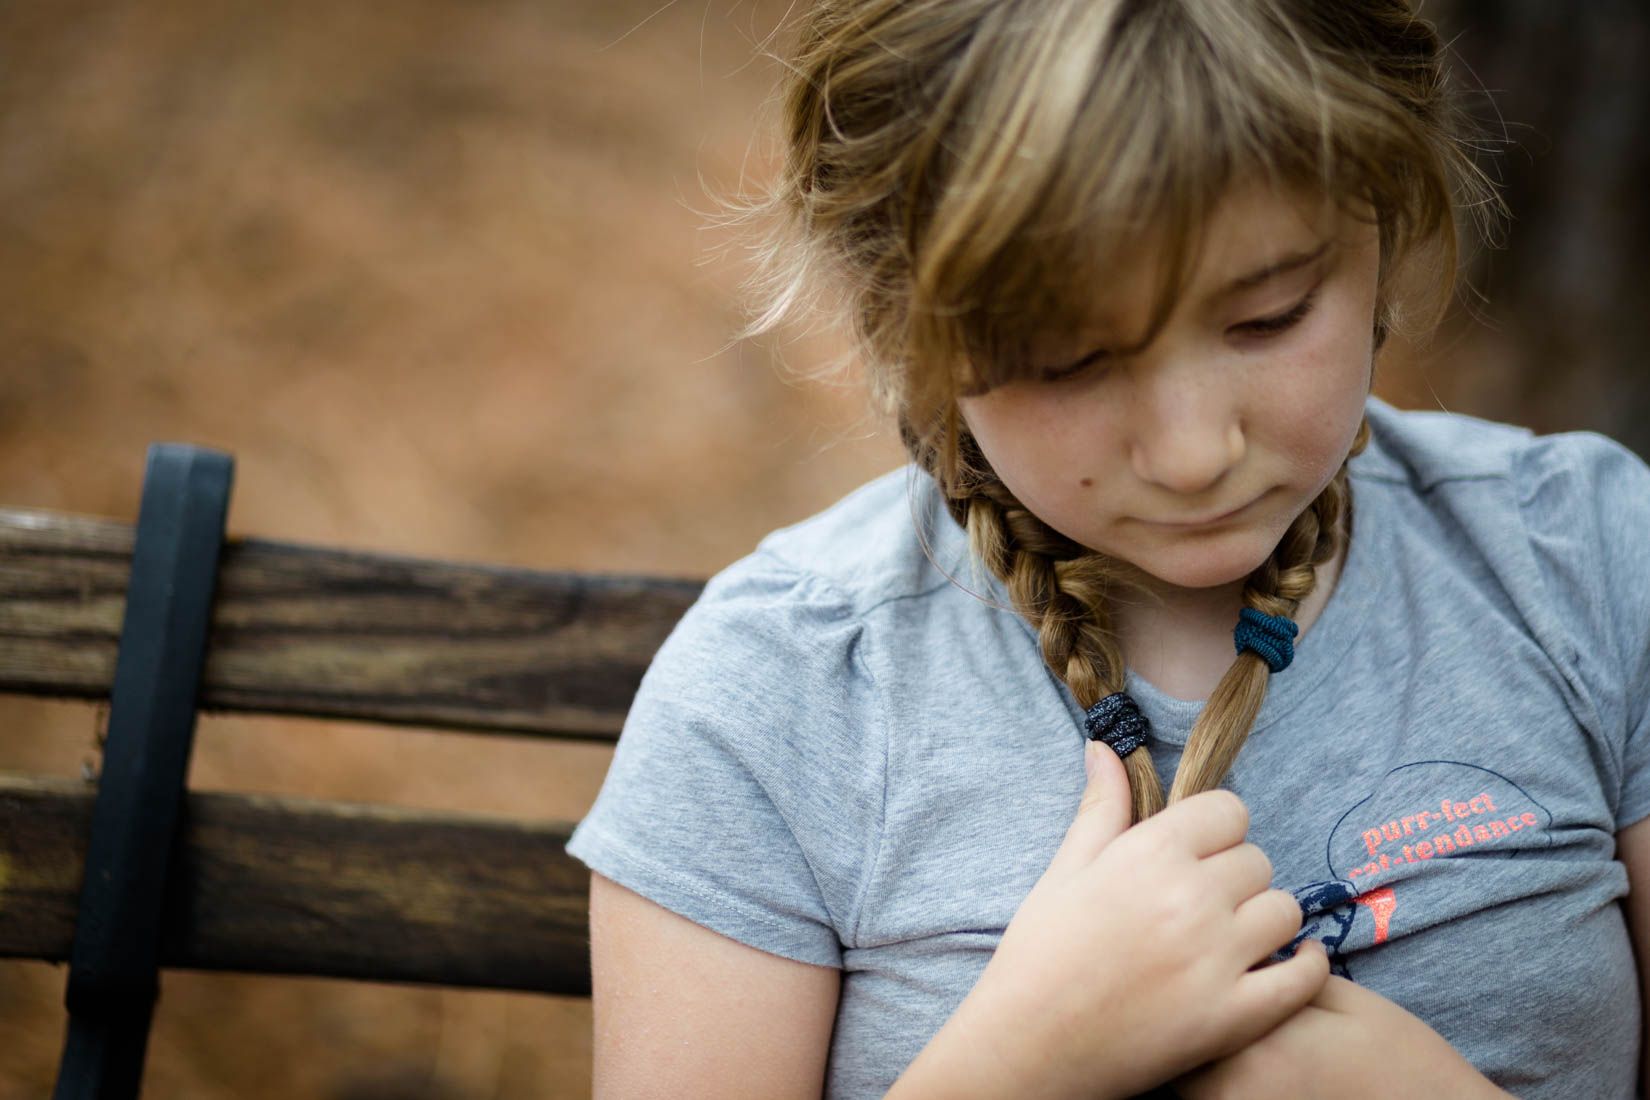 Little girl sitting on a bench playing with her pigtail braids with her hands while looking down